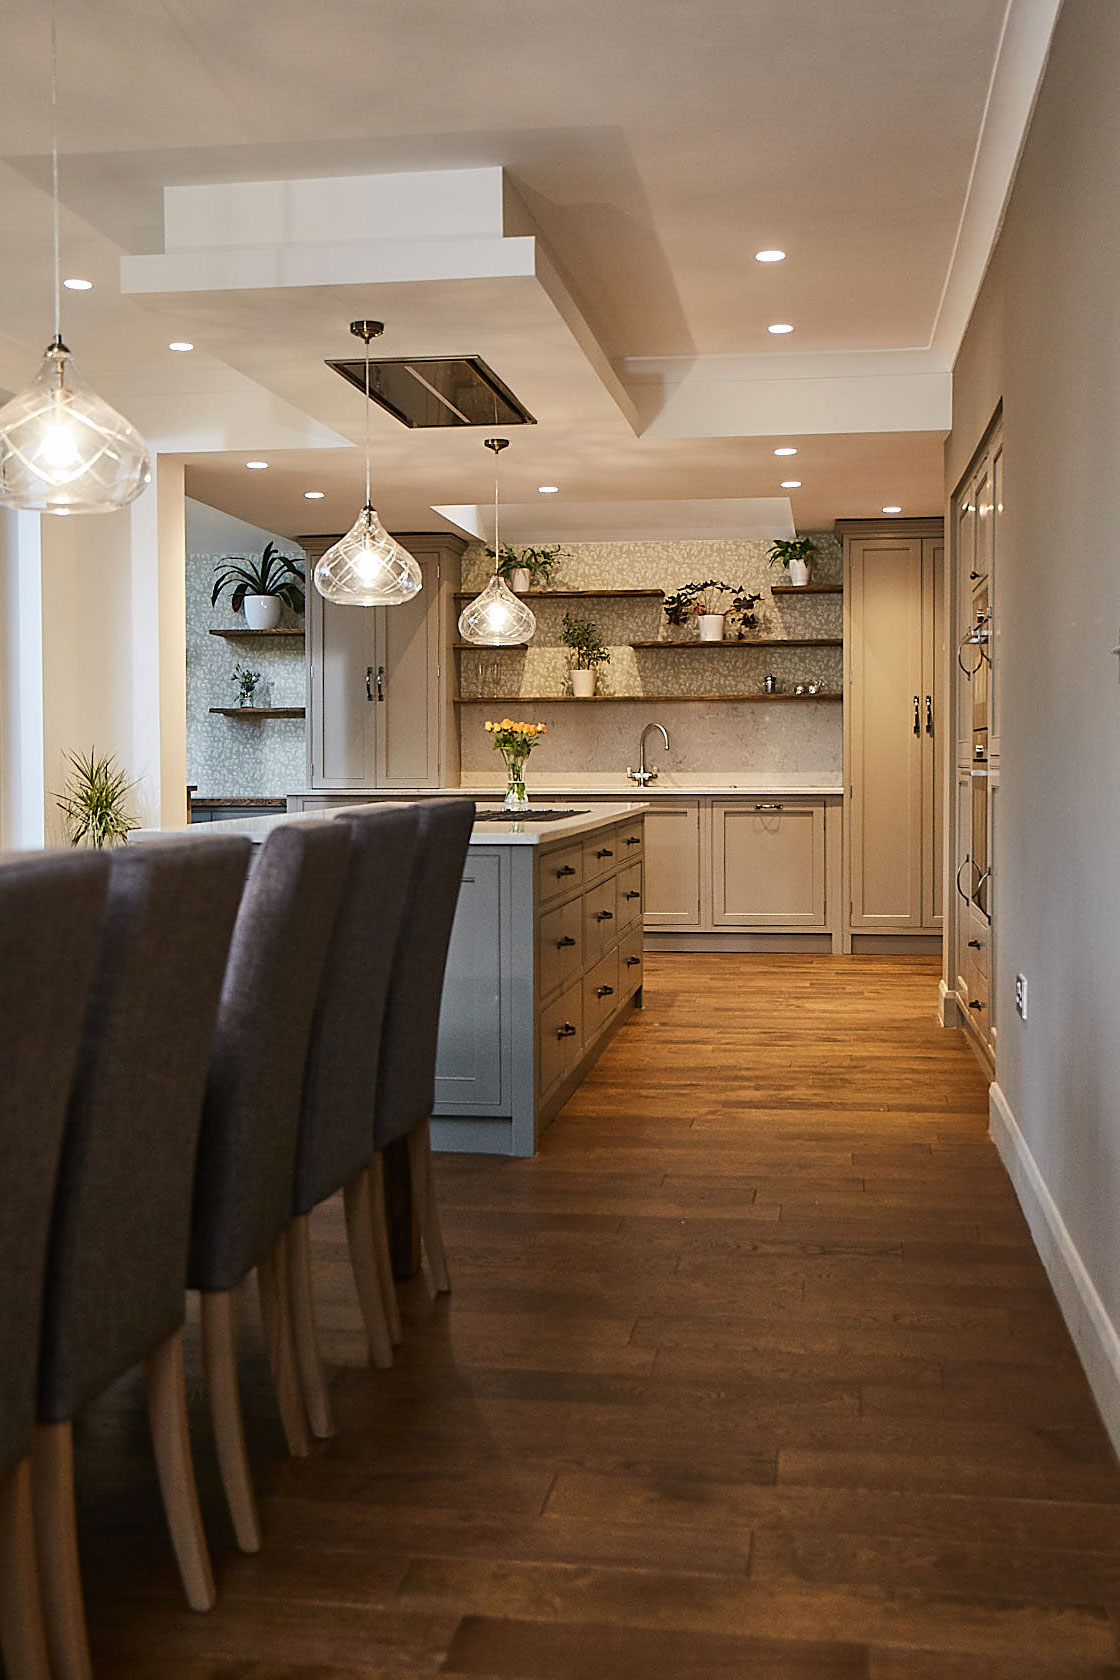 Upholstered chairs in open plan bespoke painted kitchen